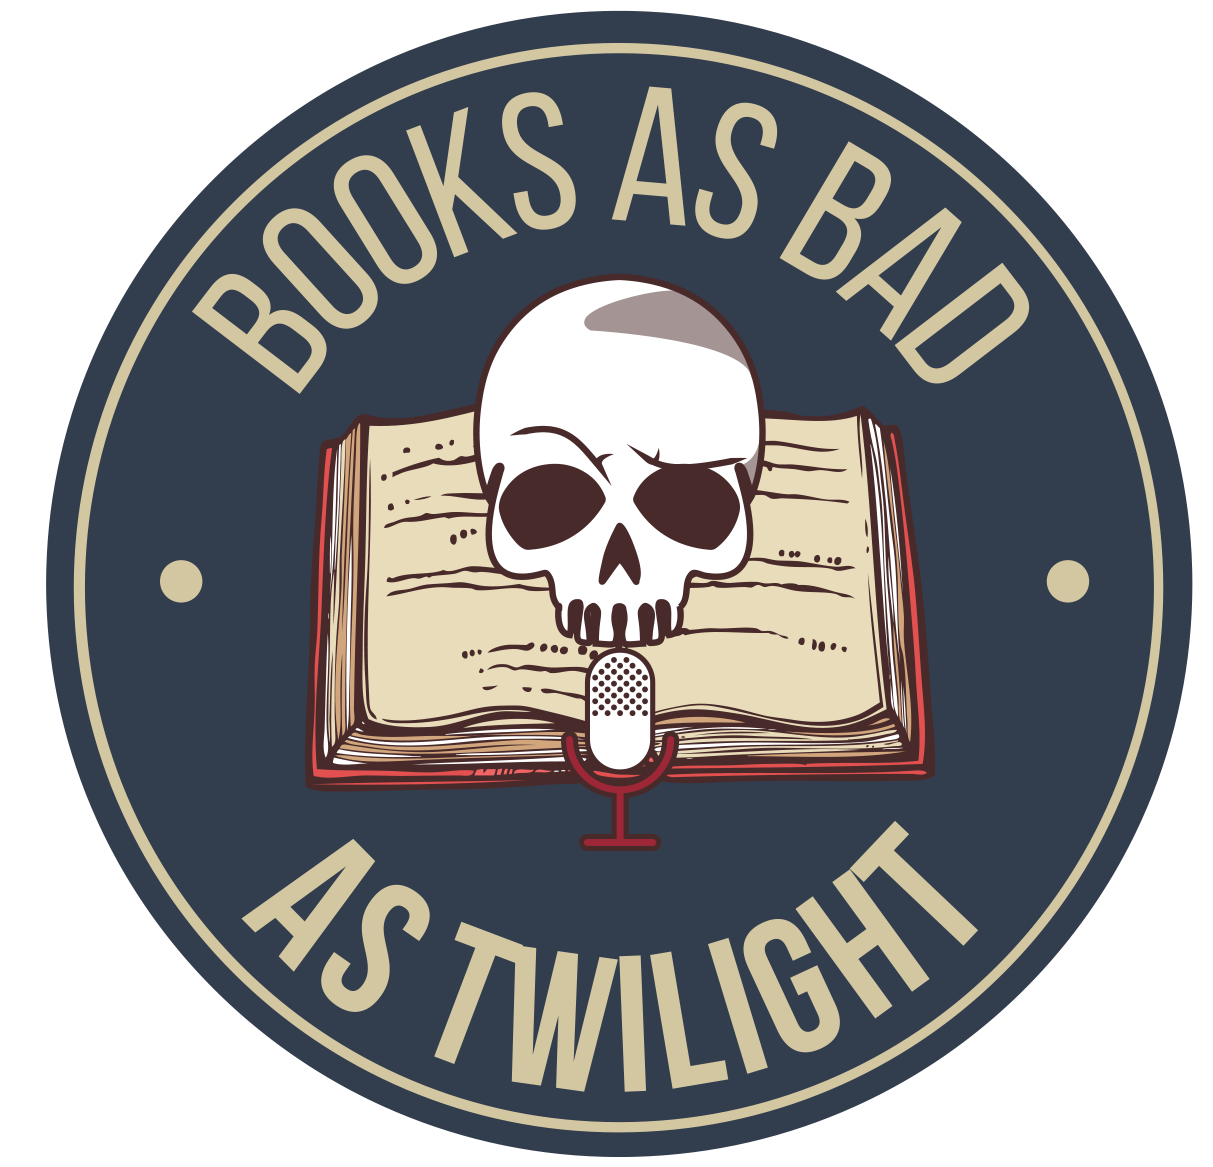 Books As Bad As Twilight Podcast